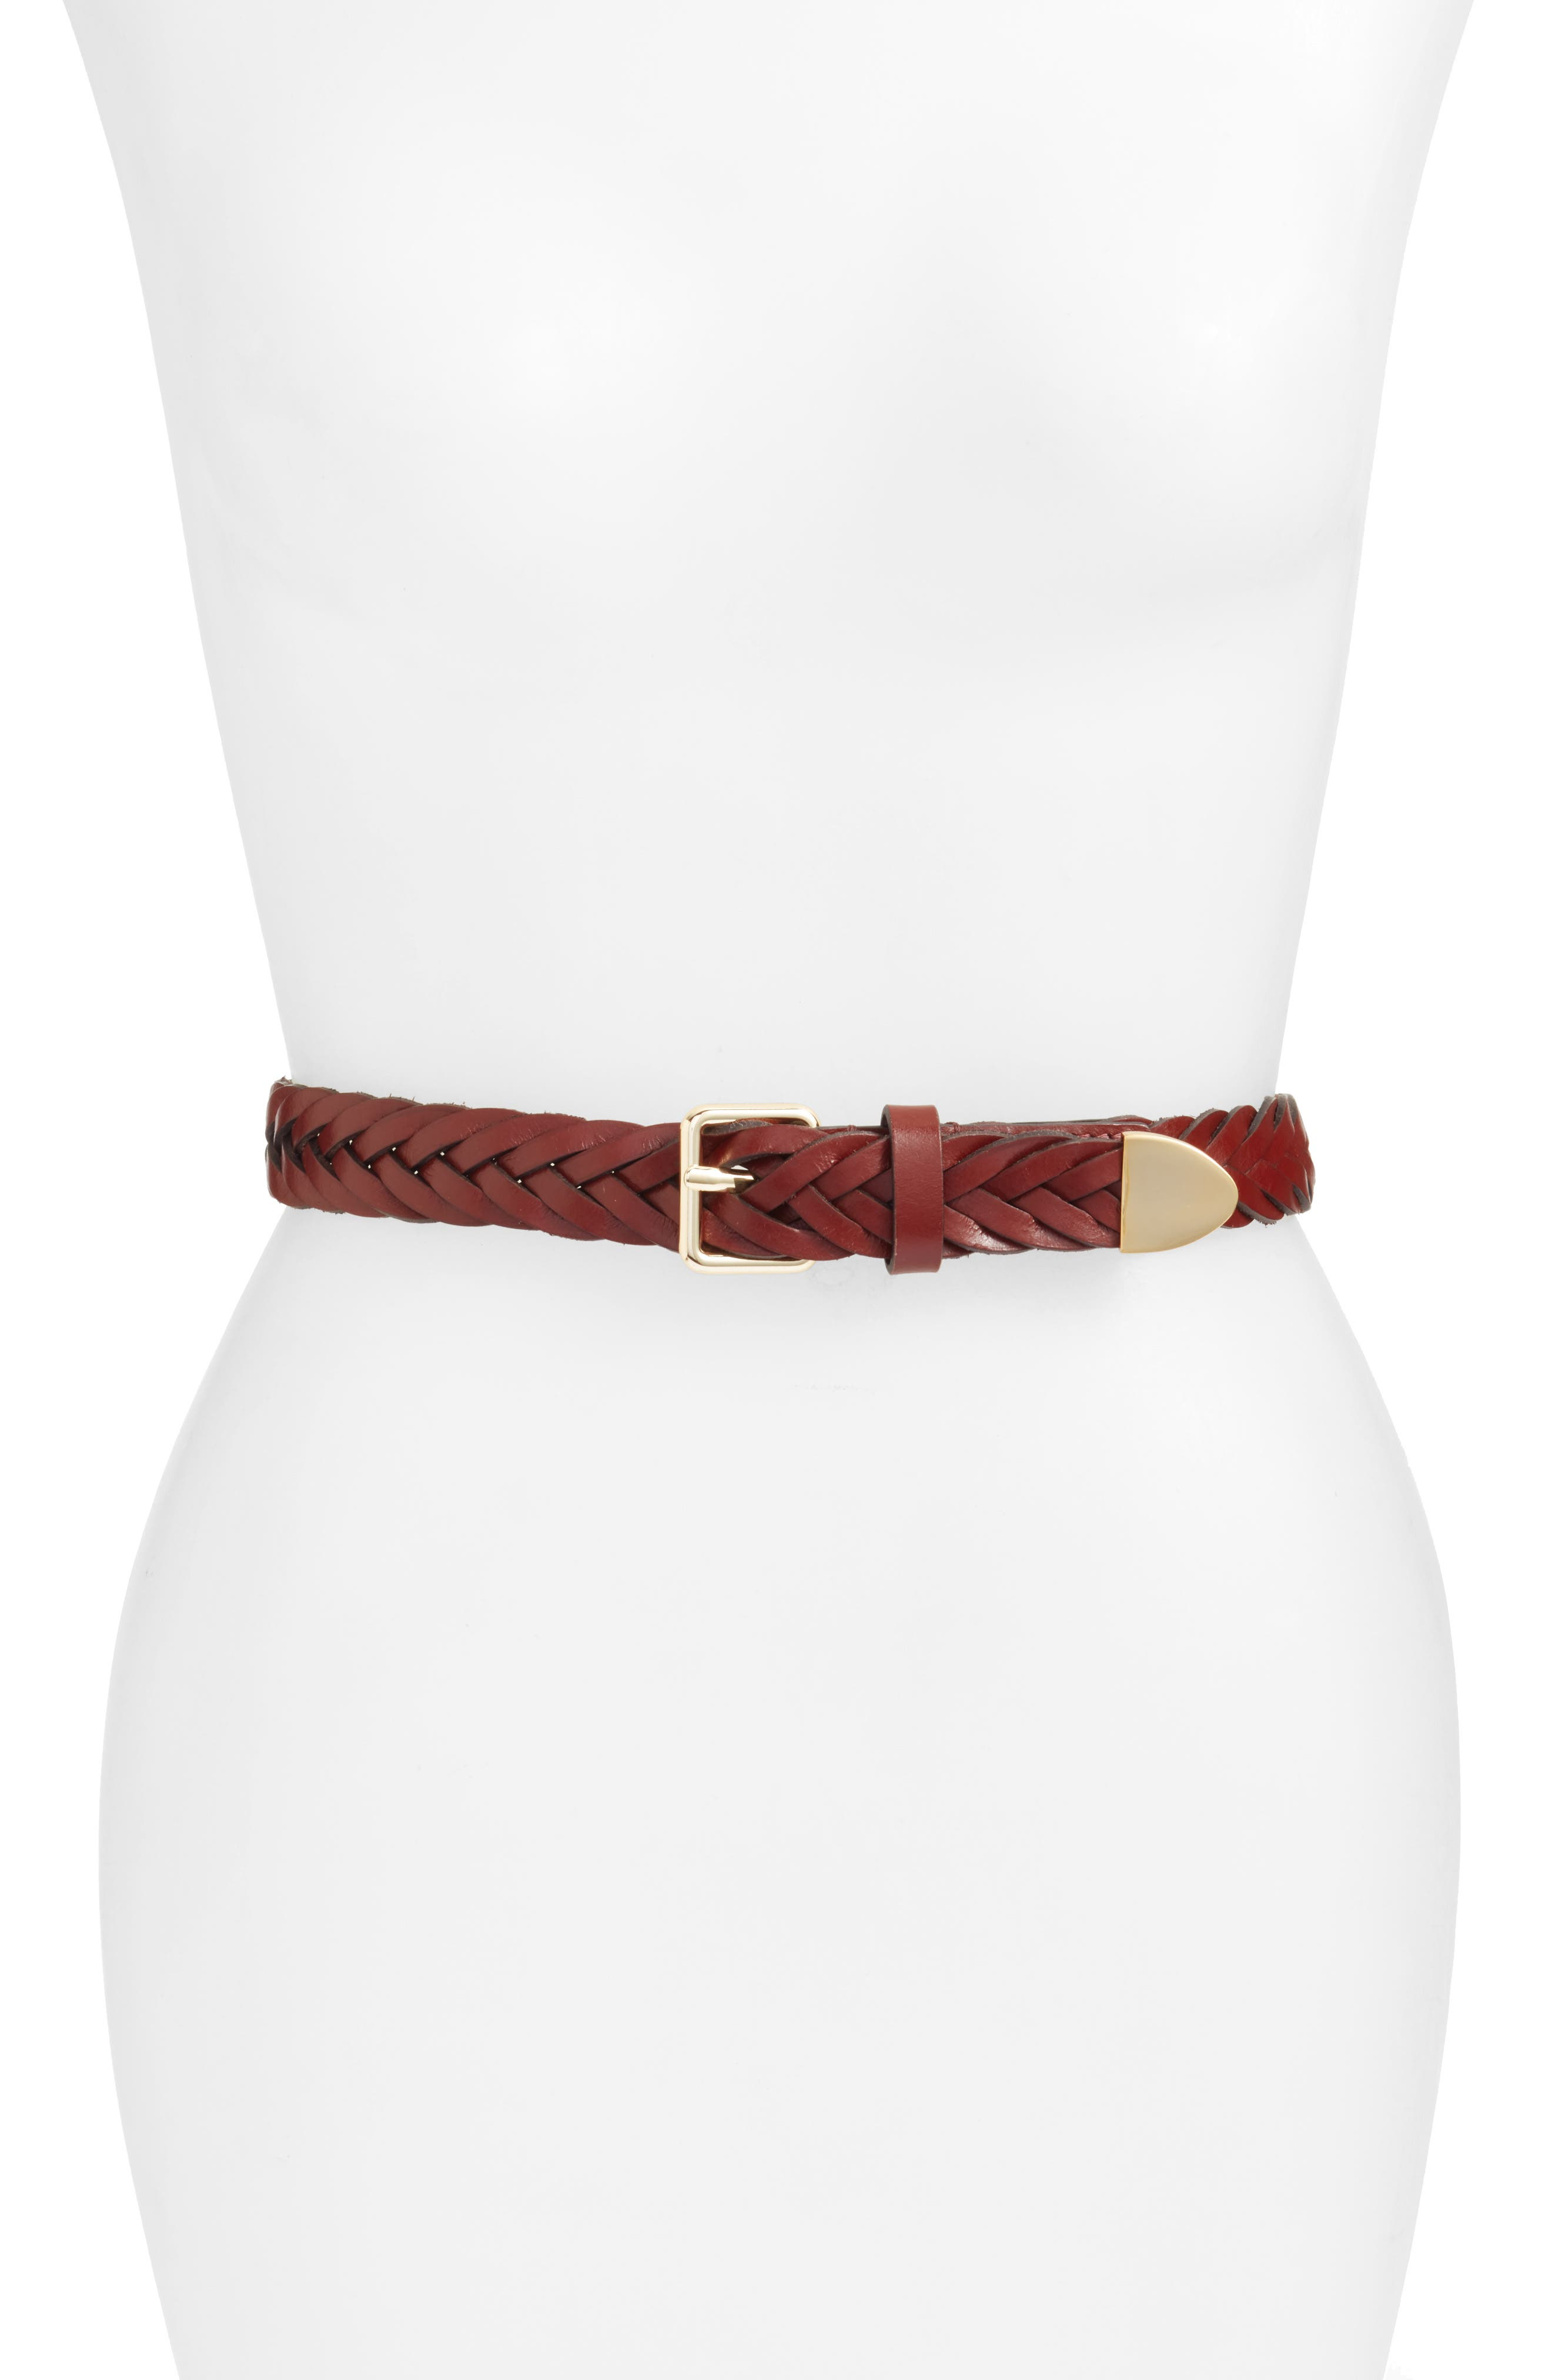 Braided Leather Belt in Luggage / Pol Gold